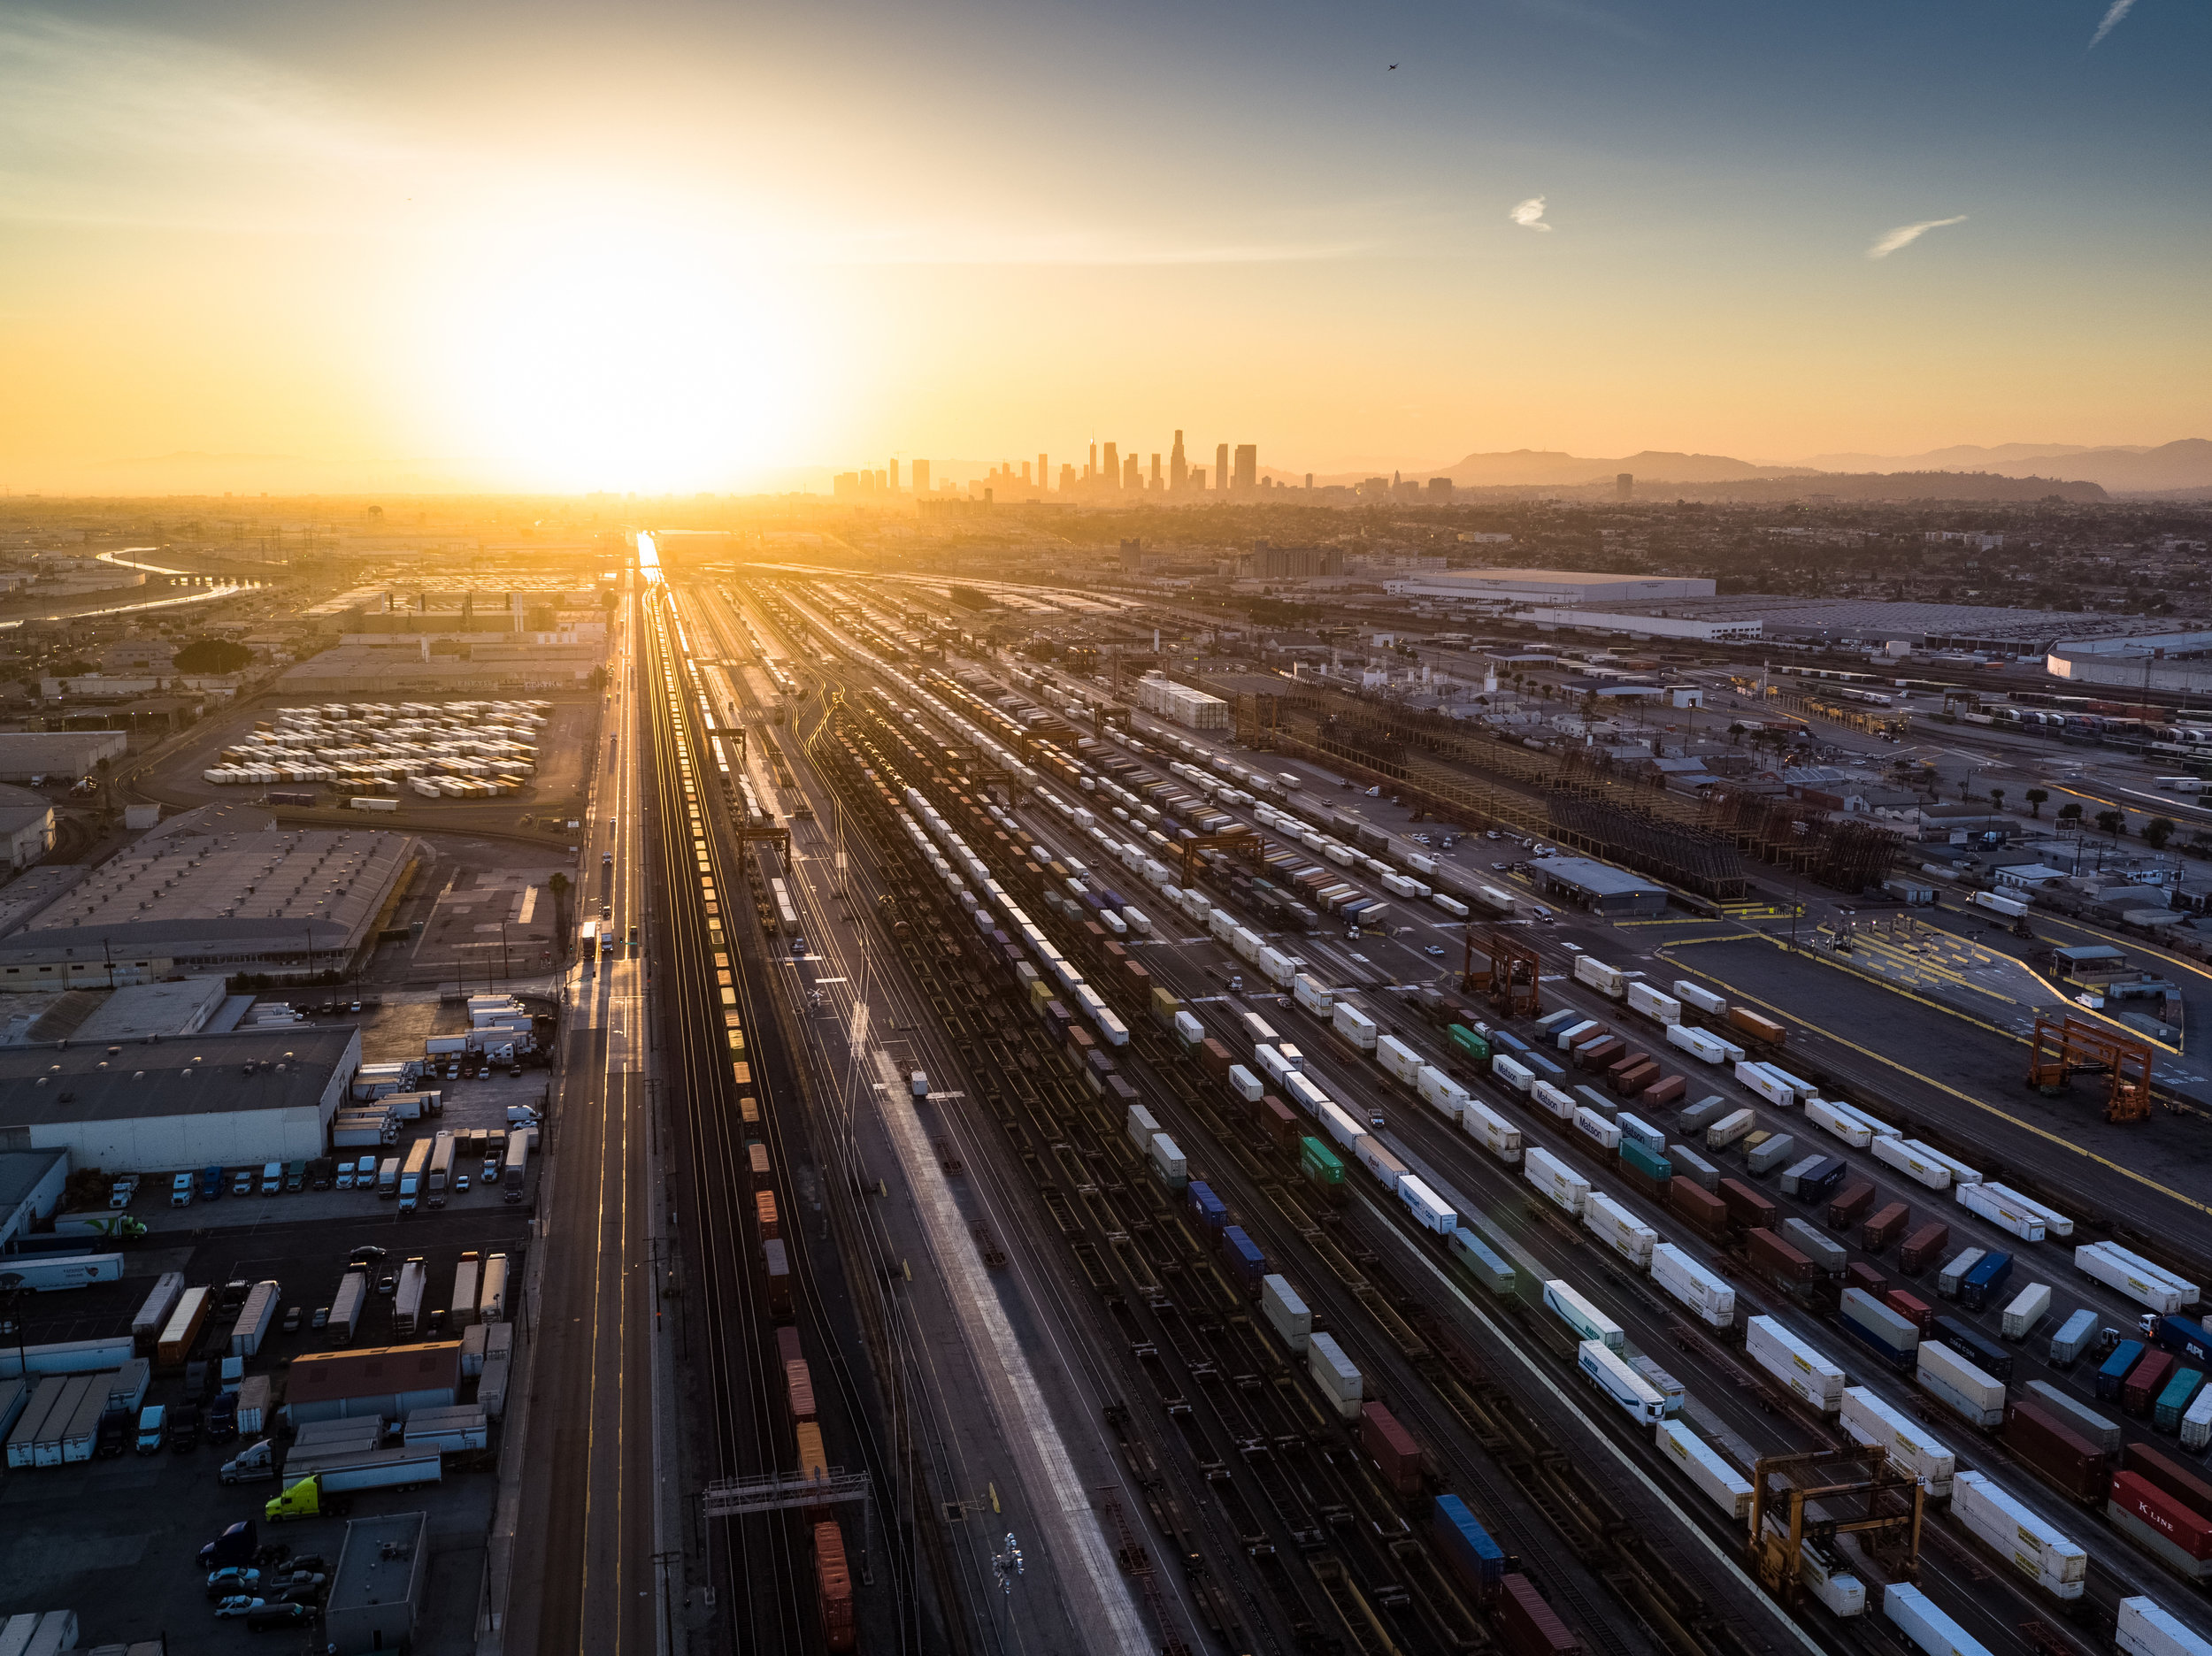 Los Angeles - LA is a transportation hub that has a vast network of railways that can be used for intermodal hauling. The area is also home to a lot of manufacturing centers, so there's plenty of loads to deliver coming out of Long Beach, City of Industry and East Los Angeles.